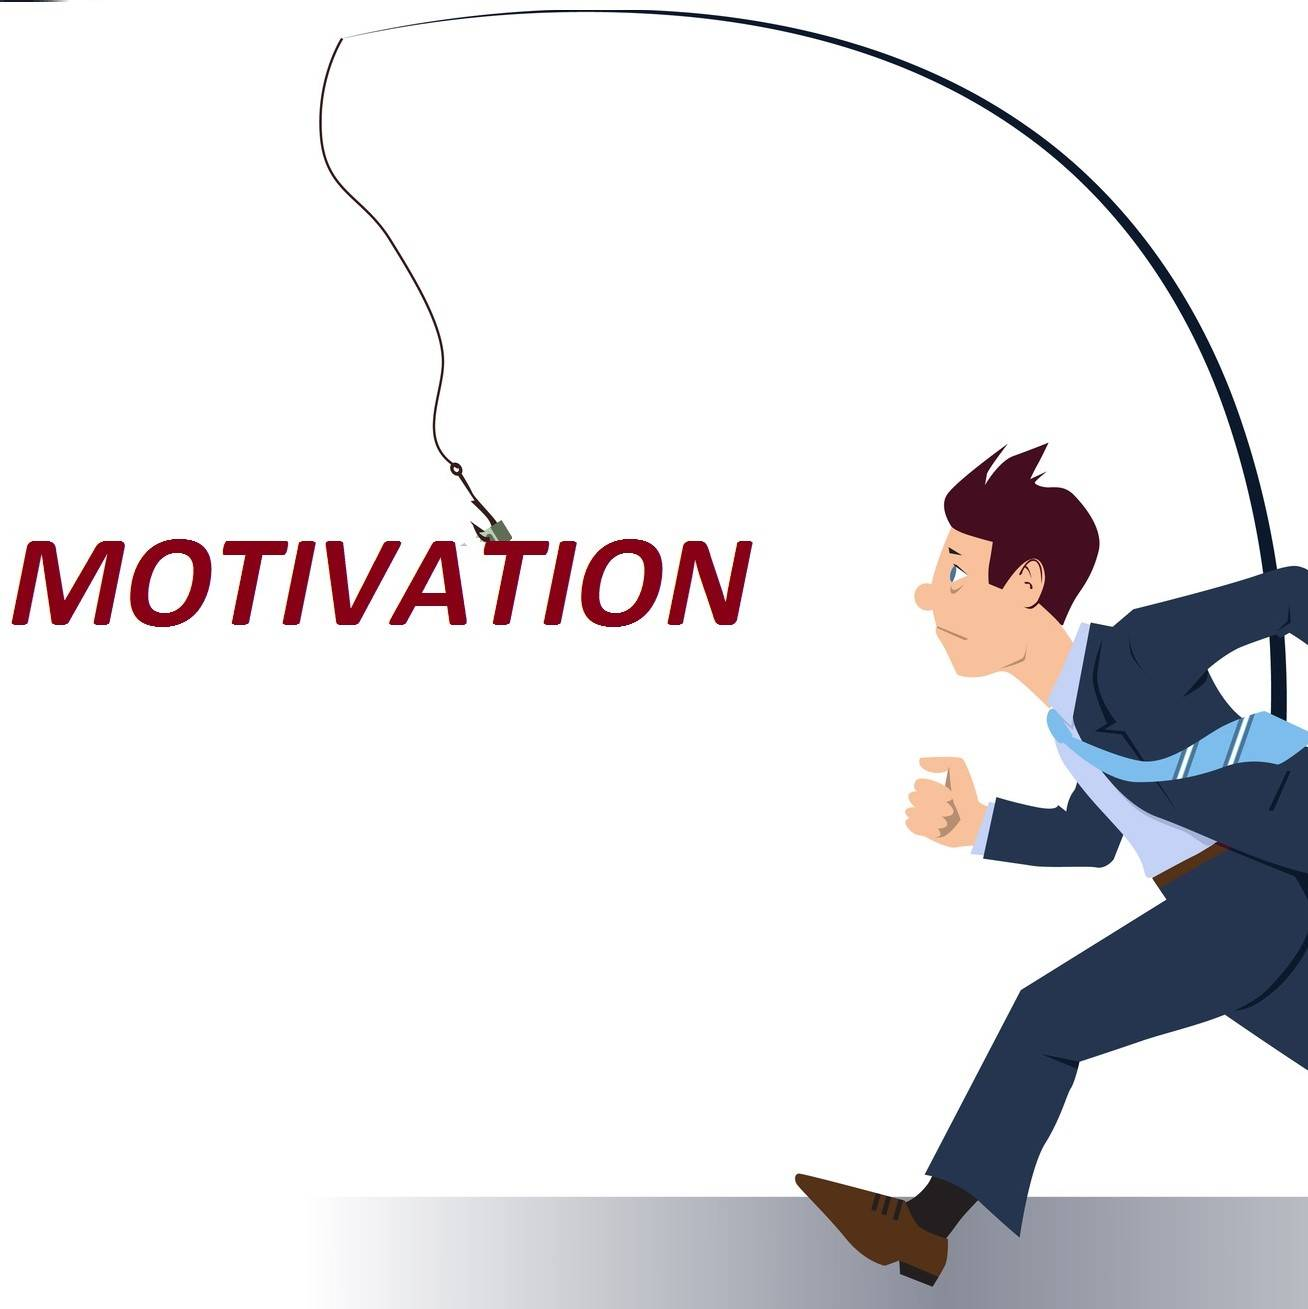 Lack of motivation at work impacts both performance and mental health